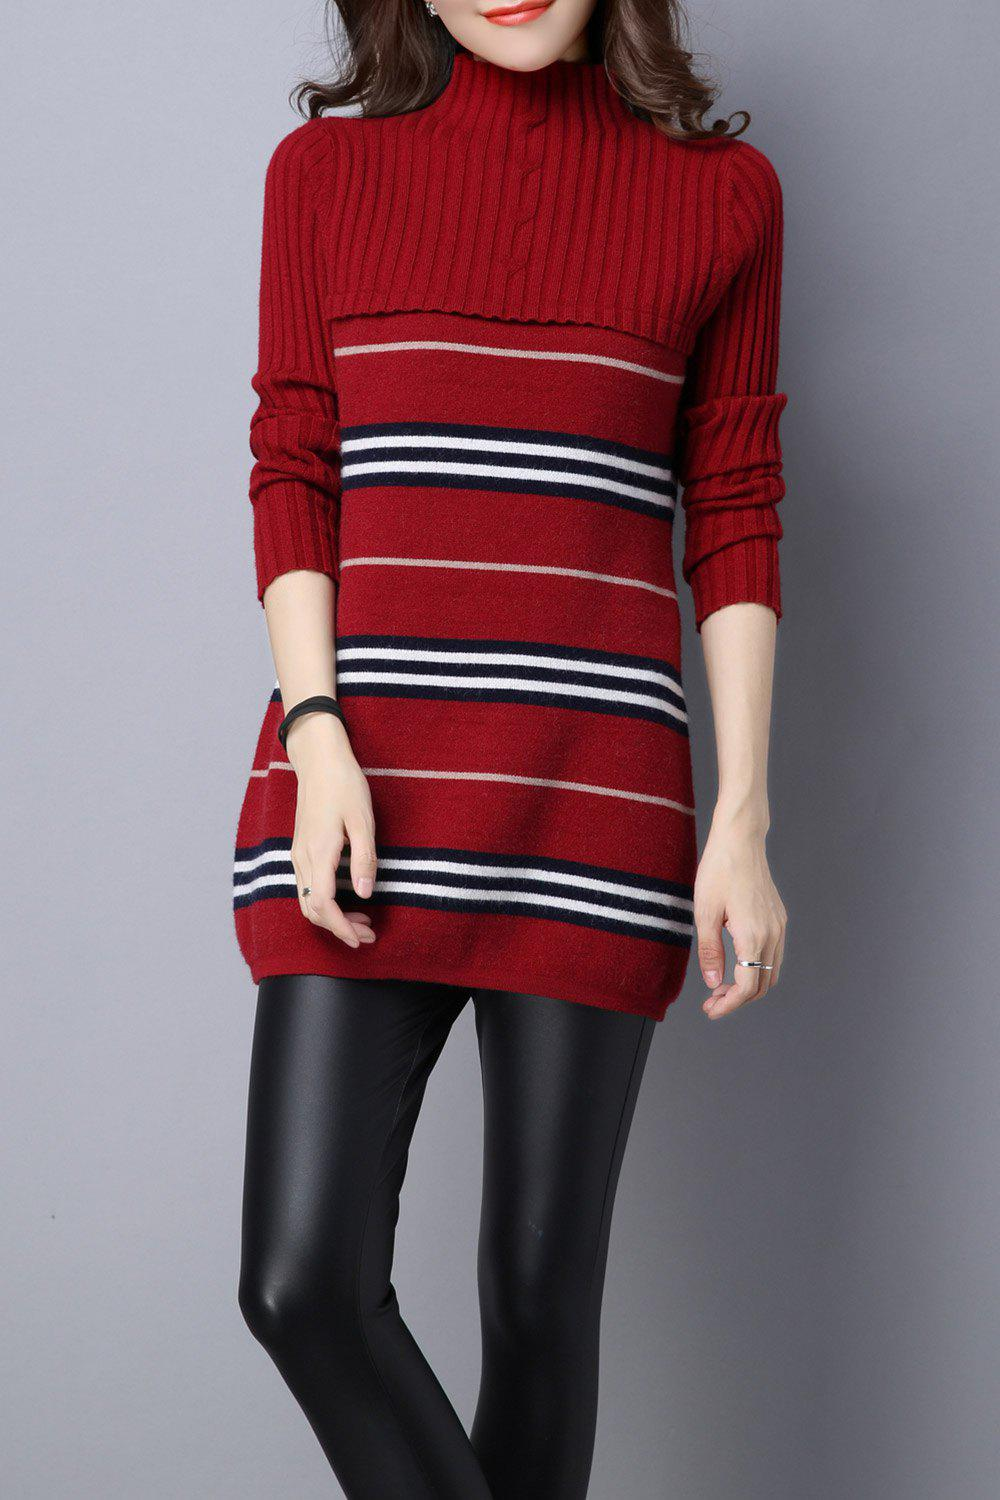 Striped Color Block tricotée Dresss - Rouge Foncé L